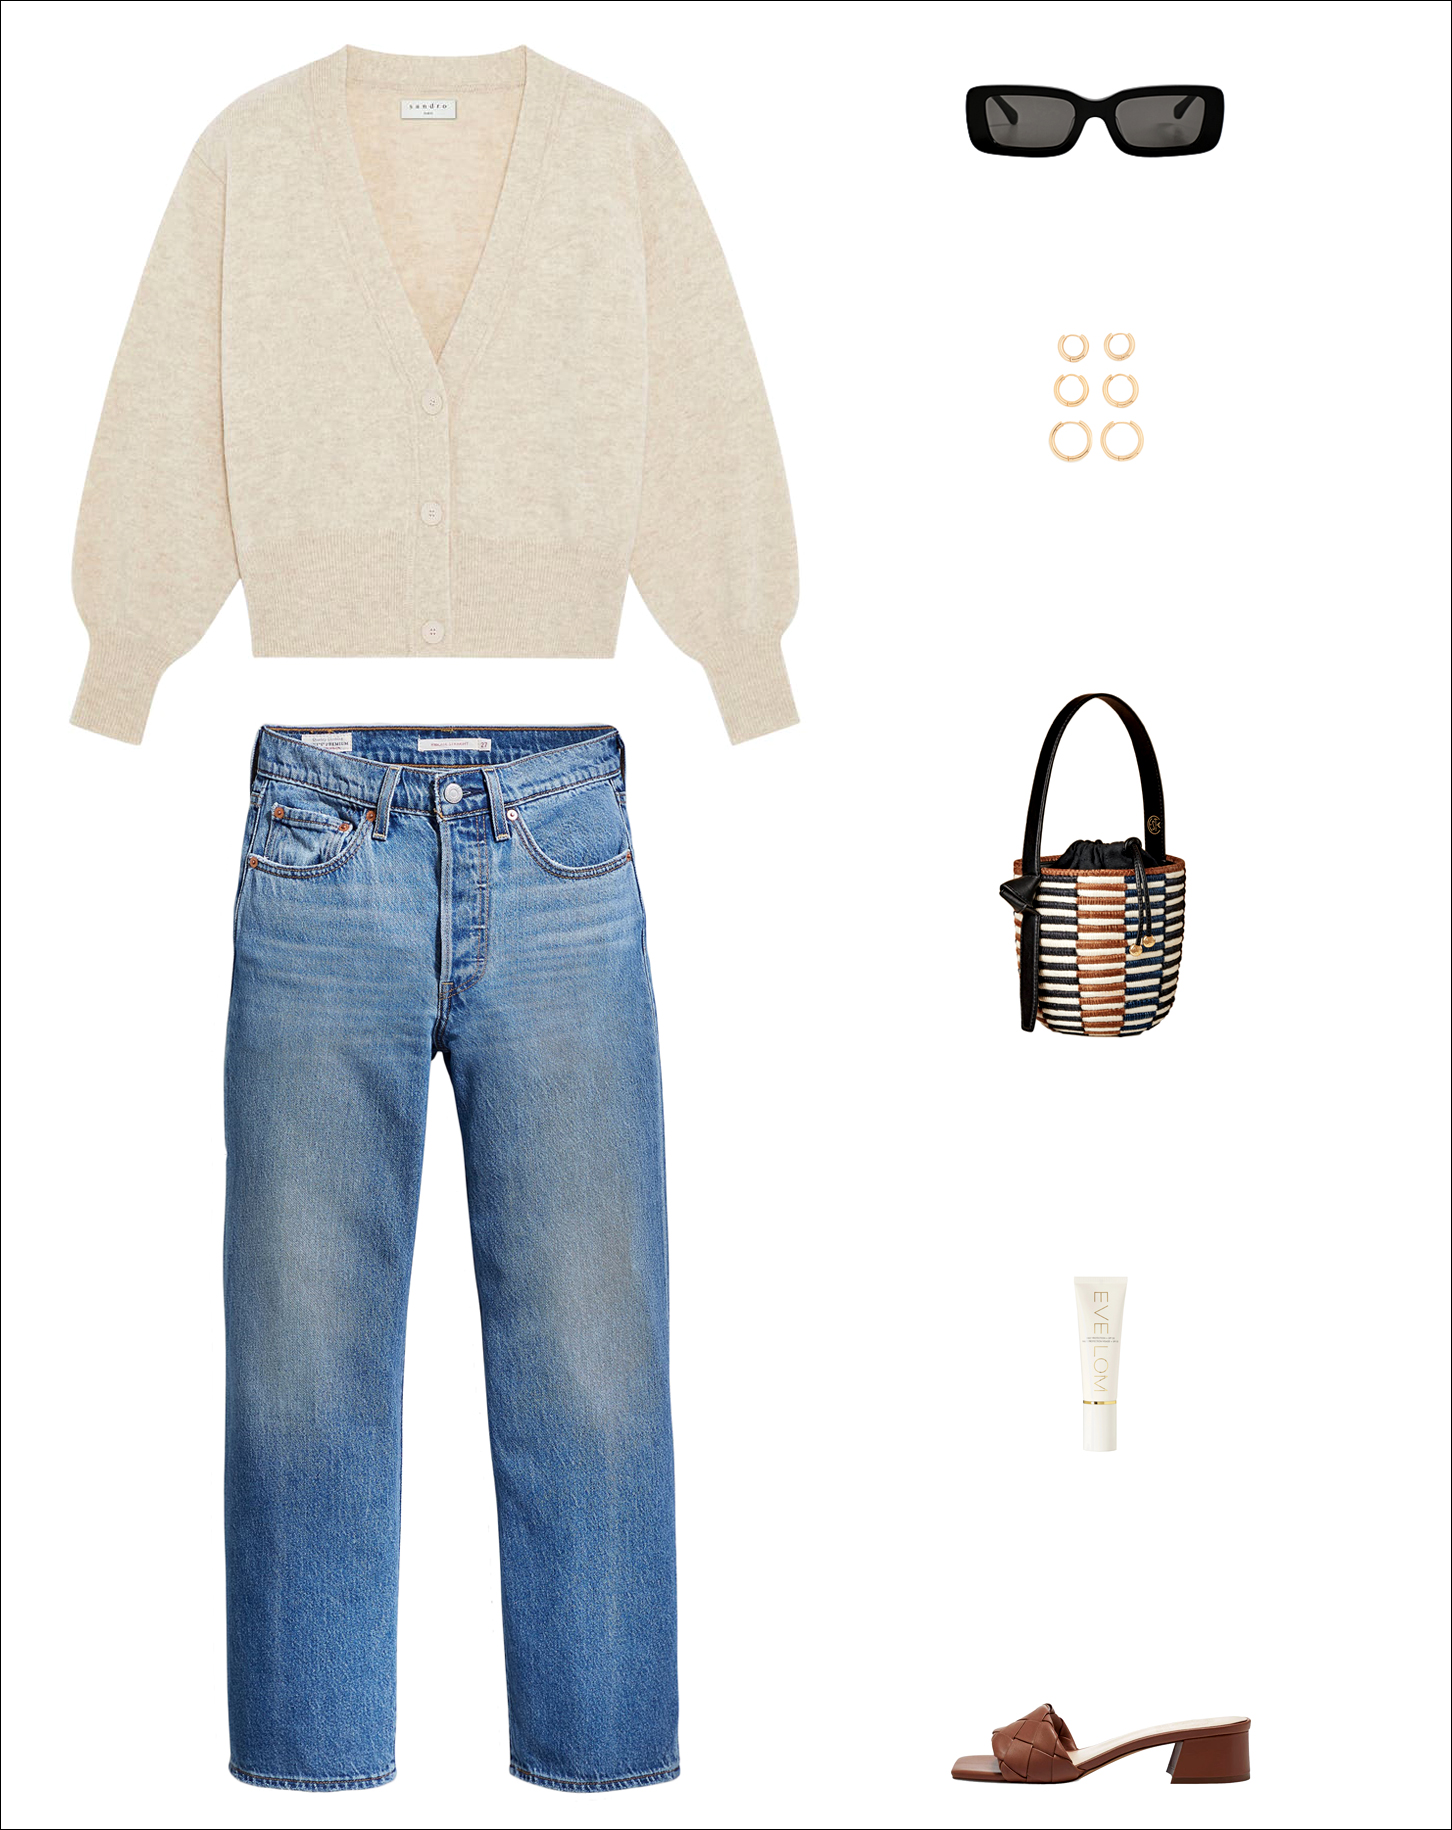 stylish spring outfit idea with a neutral cardigan, black rectangle sunglasses, hoop earrings, Cesta mini bucket bag, classic straight-leg Levi's jeans, and braided slide sandals